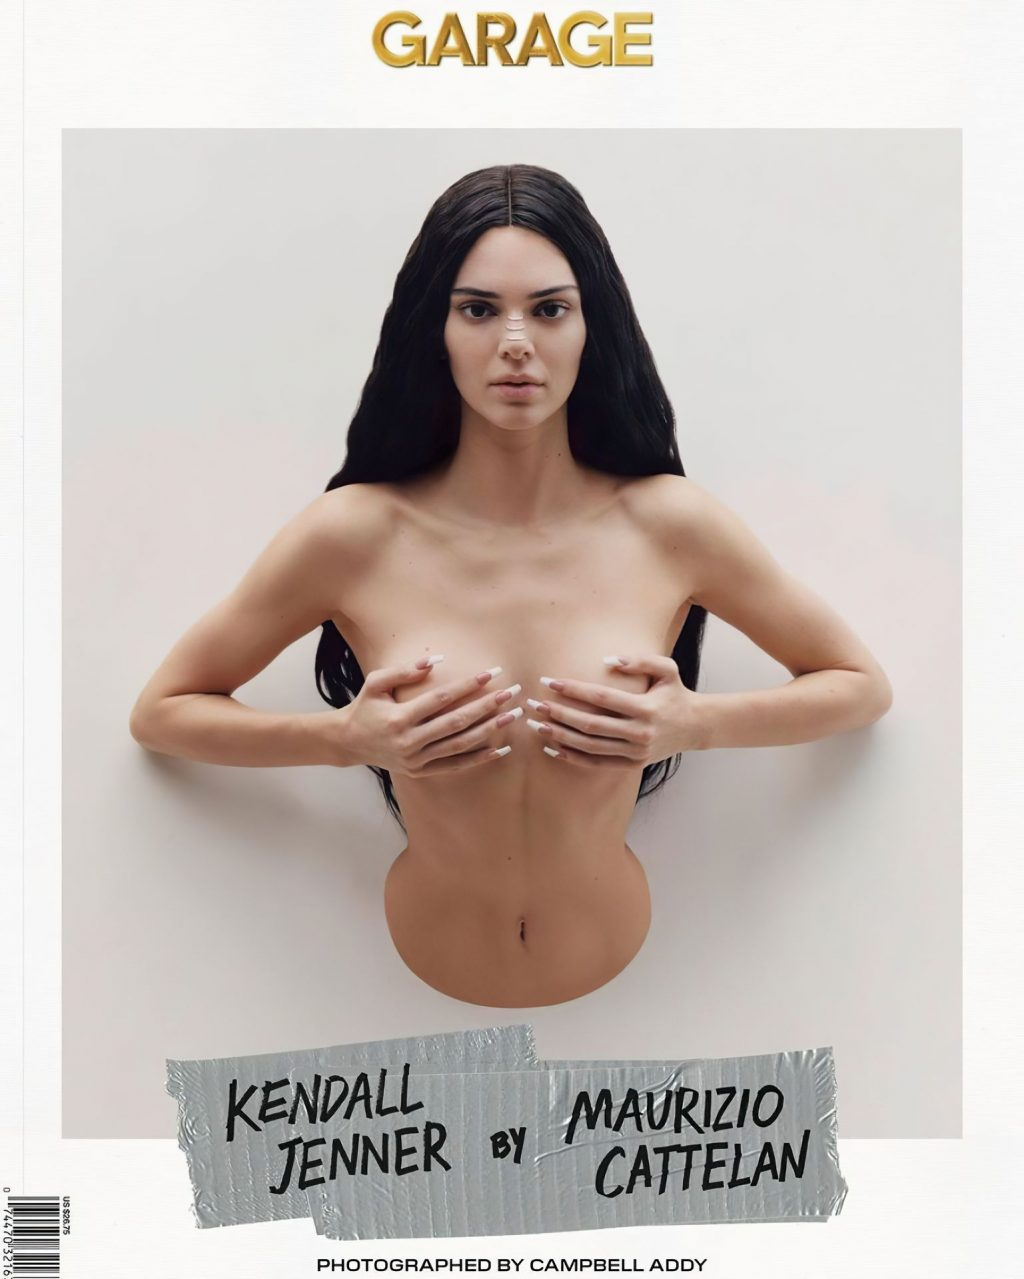 Kendall Jenner Sexy & Topless – Garage Magazine (9 Photos)